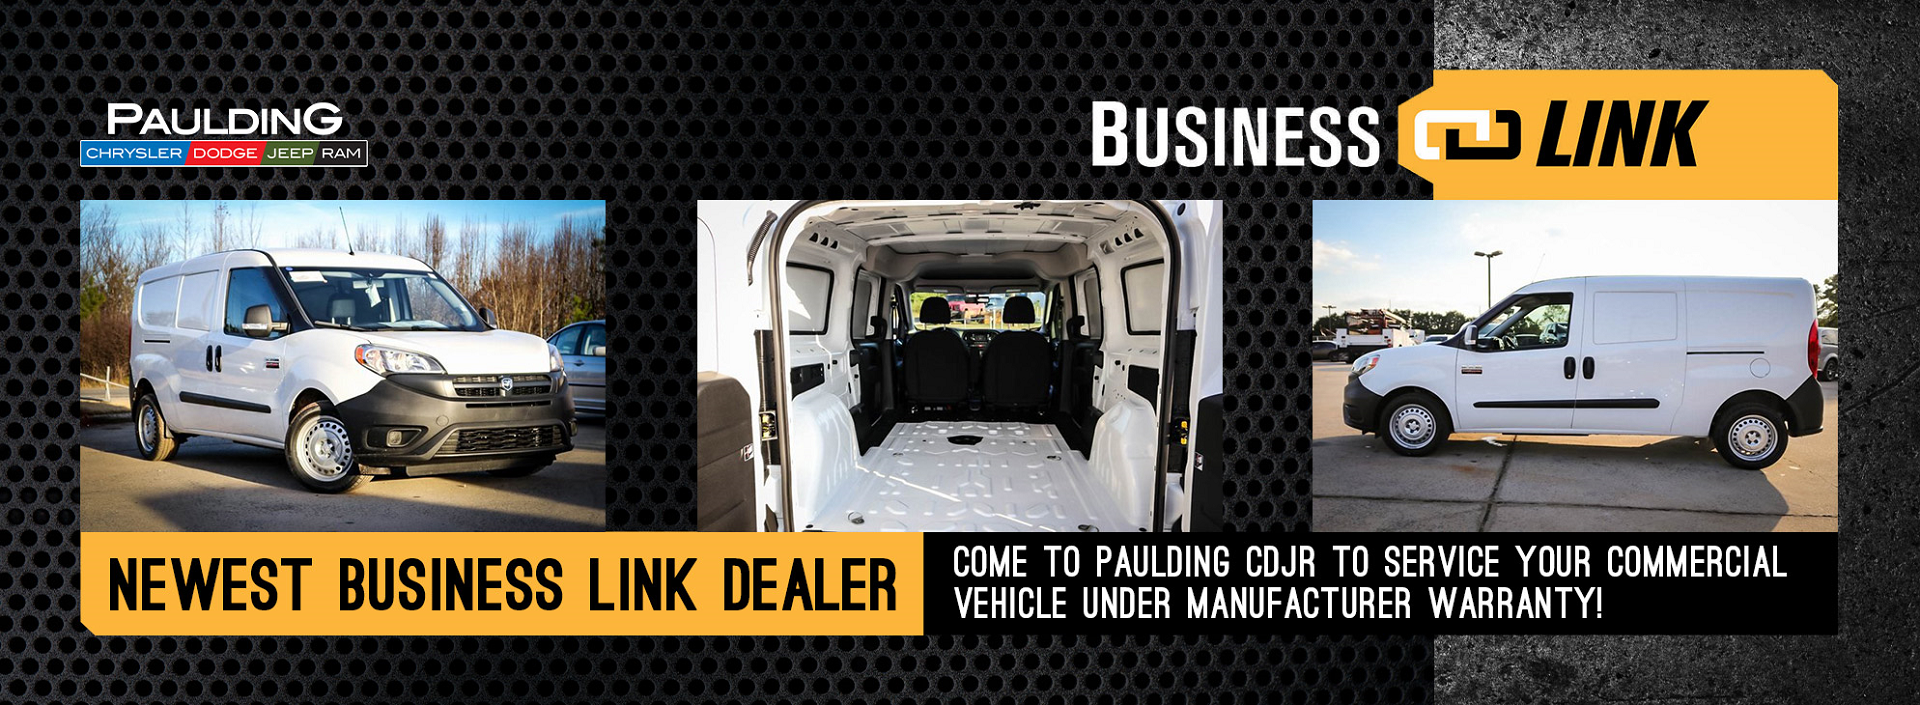 Paulding CDJR is now a BusinessLink service provider for your business and fleet vehicles